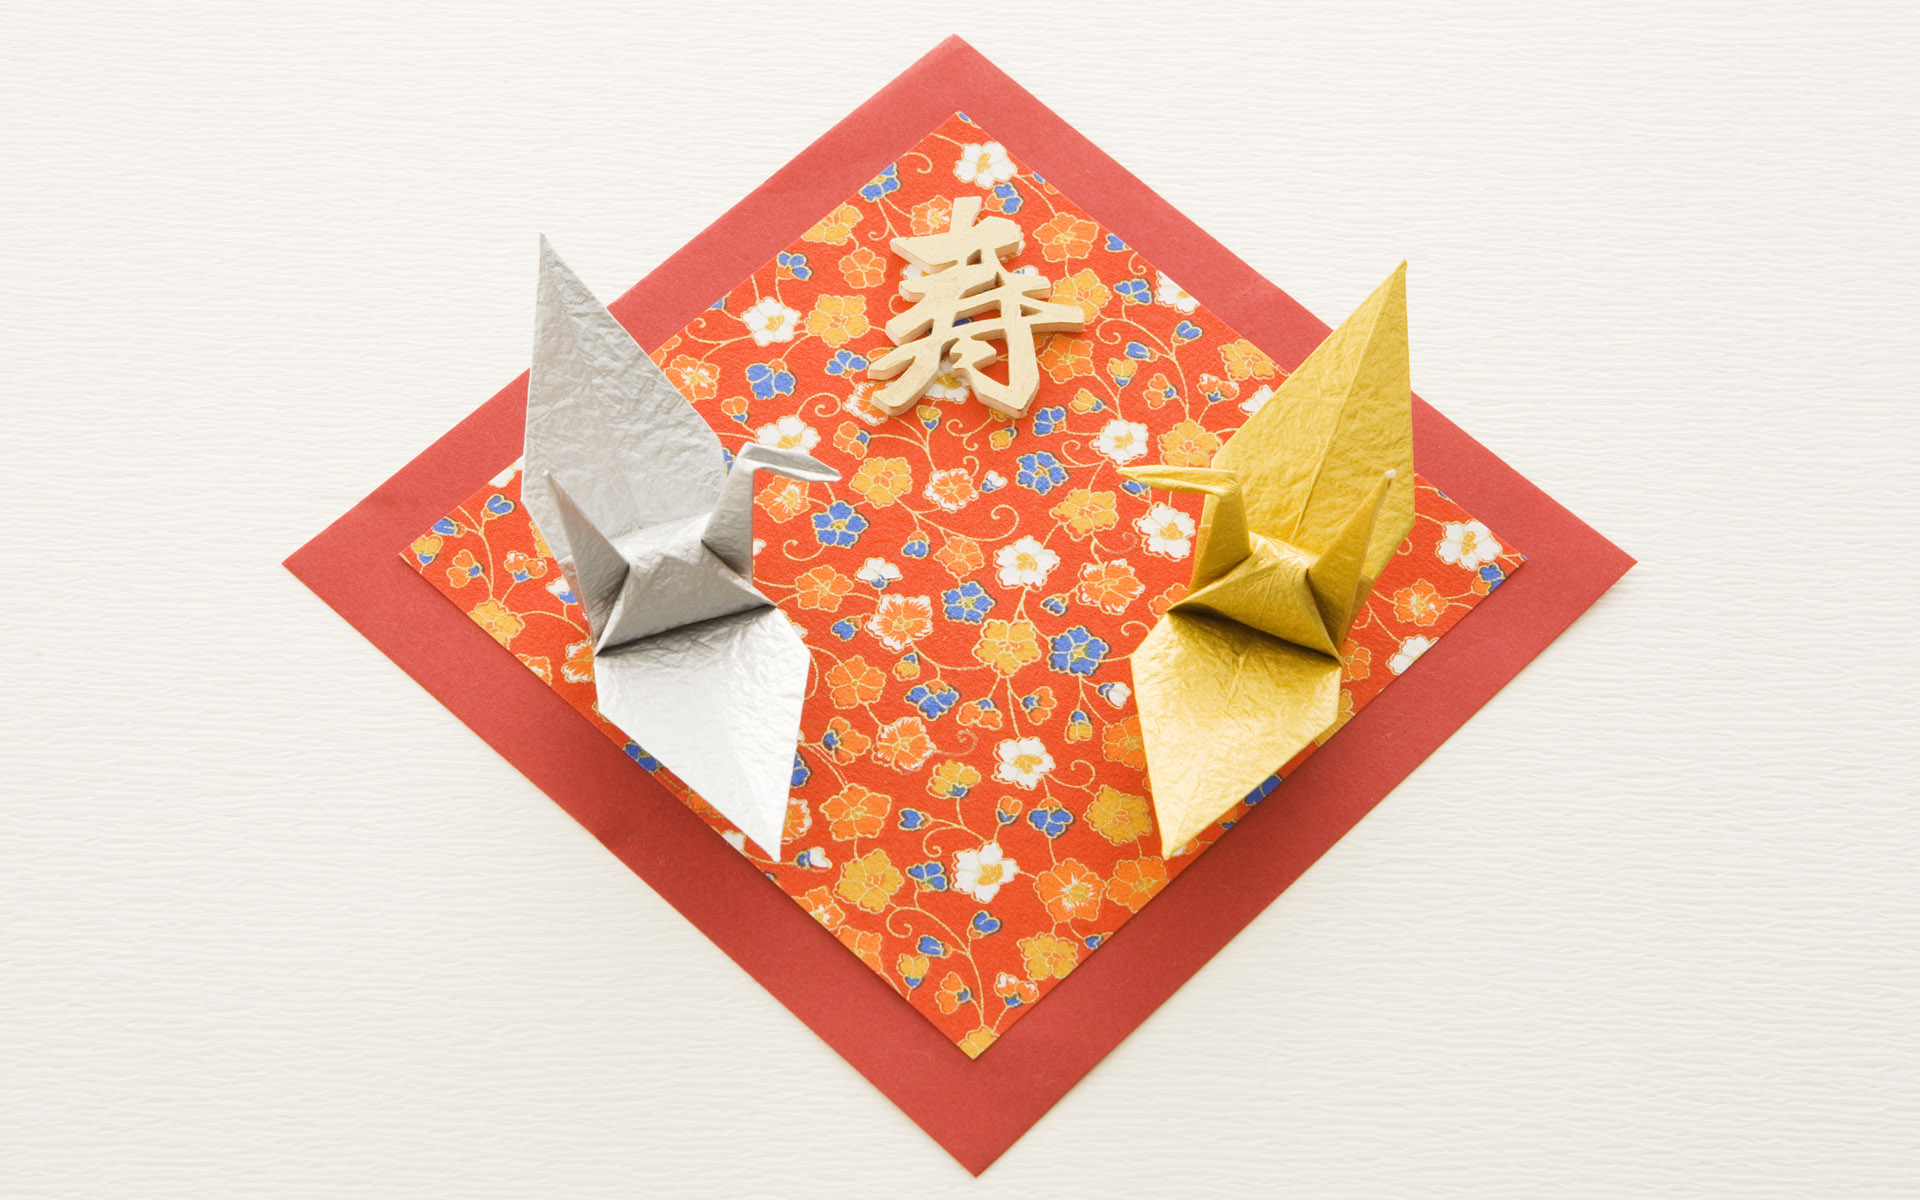 Japanese New Year and cultural material 4911